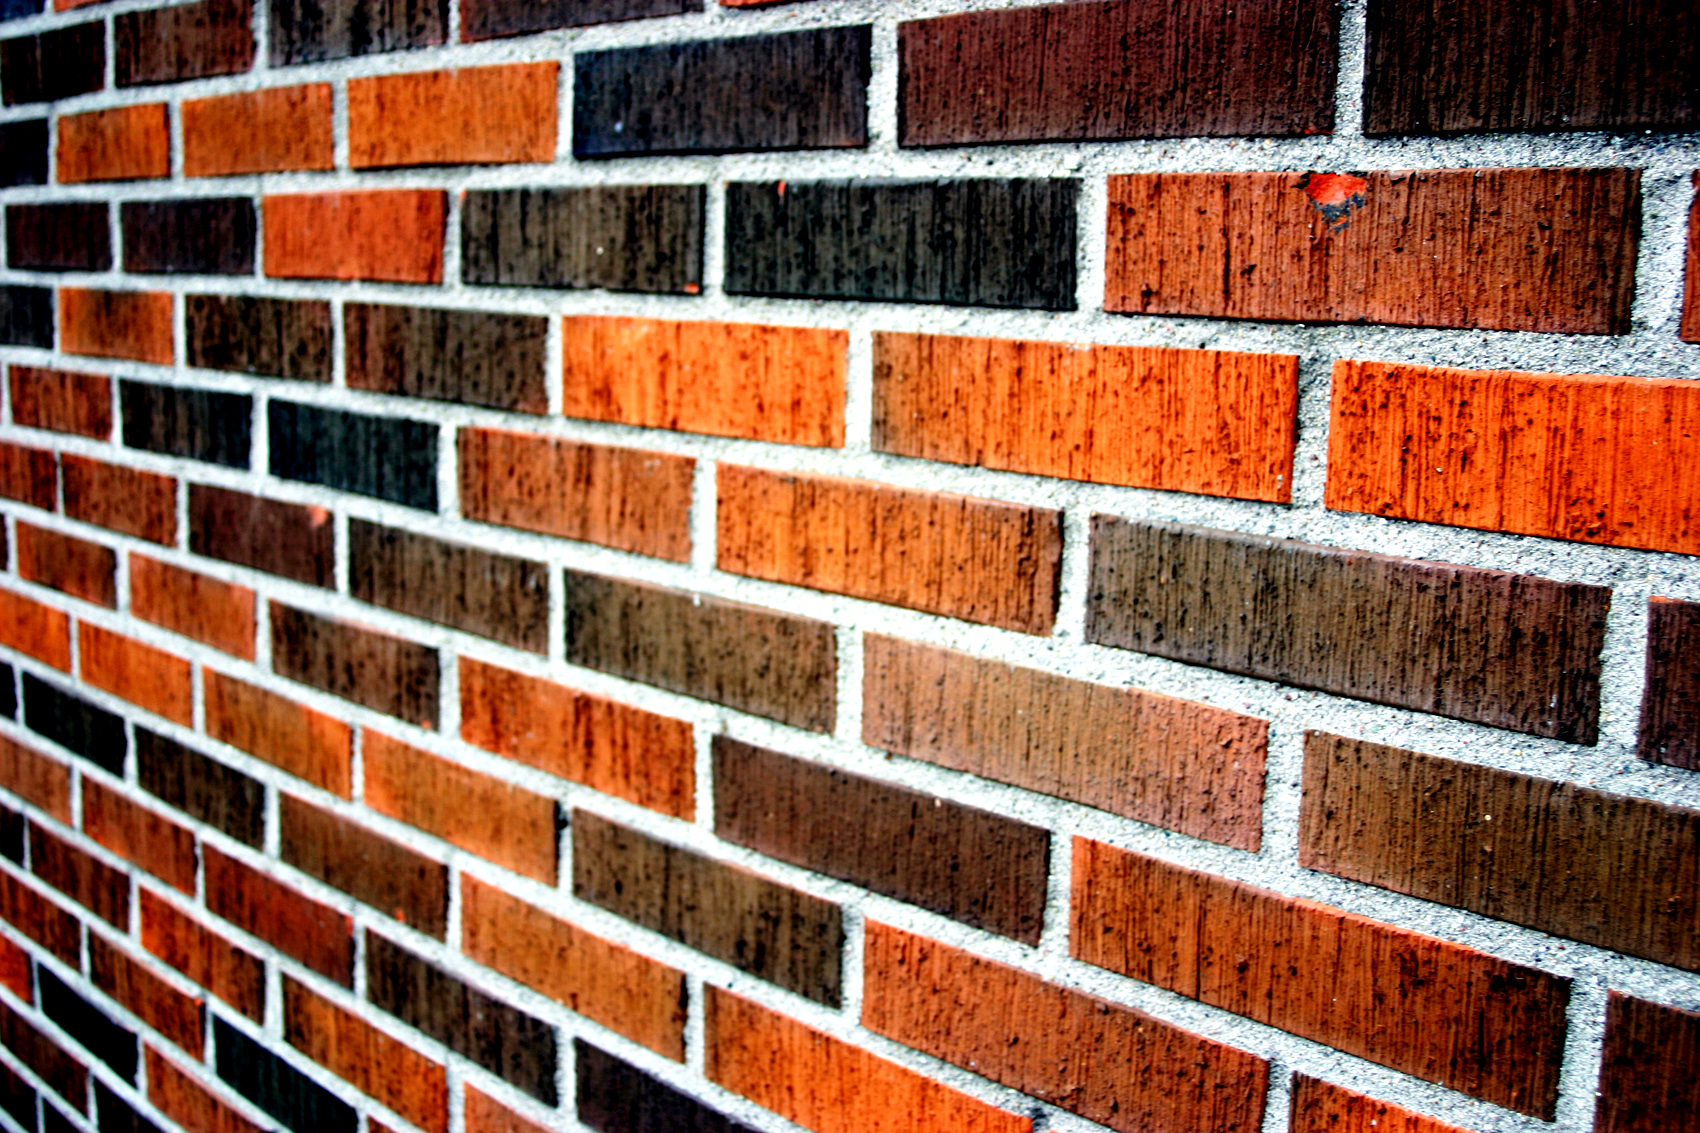 Orange brick wall, Brick, Brown, Orange, Texture, HQ Photo